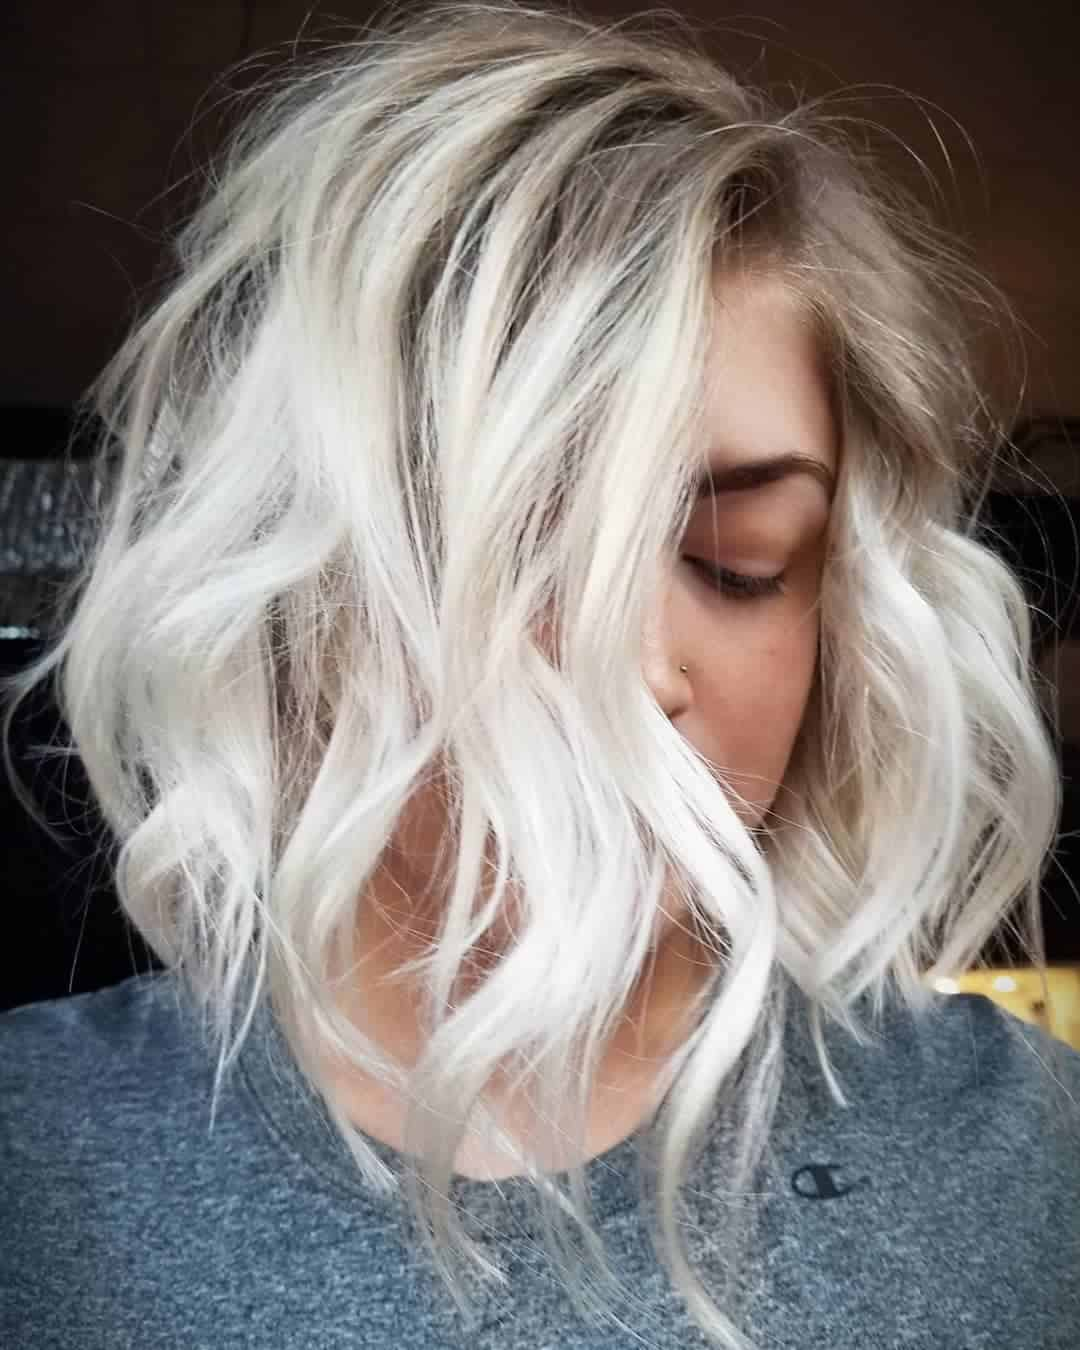 Hairstyles-2019-Latest-Hair-Style-ideas-for-women